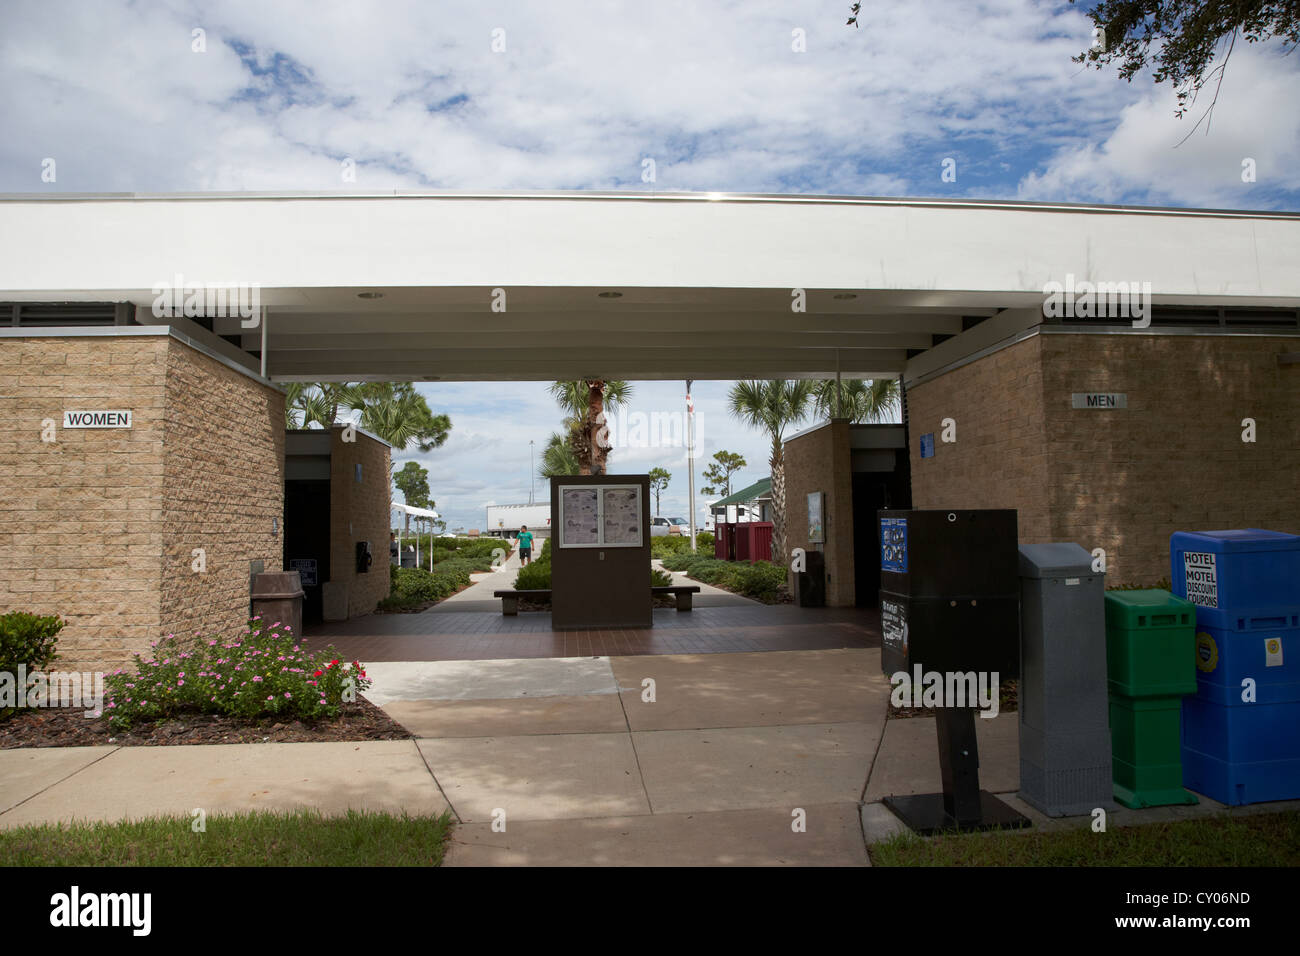 toilets and snack building at interstate rest service stop florida usa - Stock Image